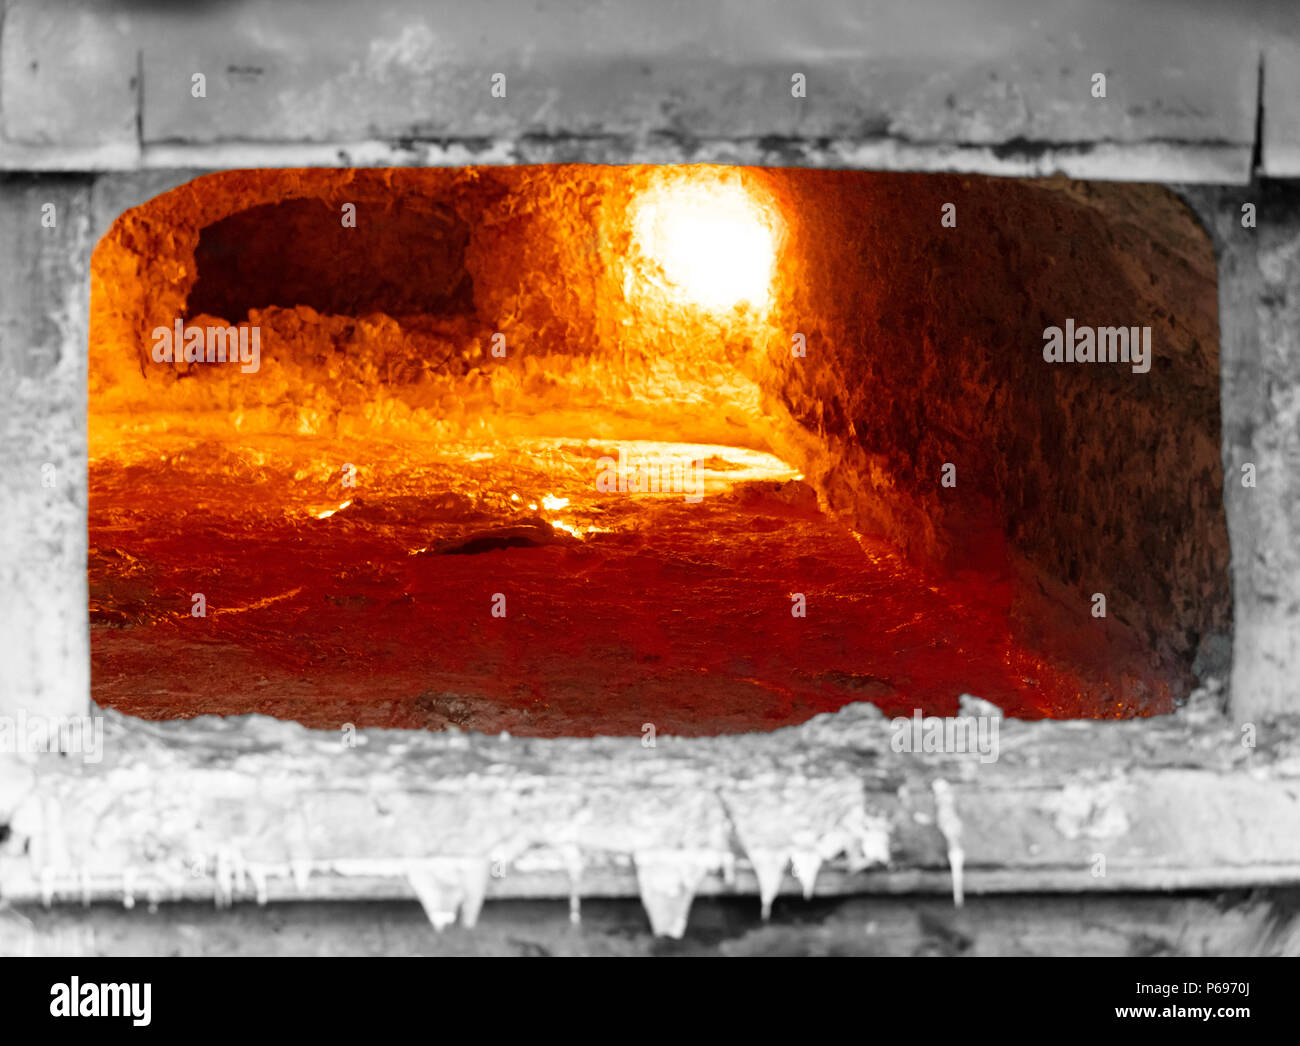 Liquid Metal Stock Photos Images Alamy Aluminum Melting Furnace Schematic Gas Looking Inside An In A Foundry With And The